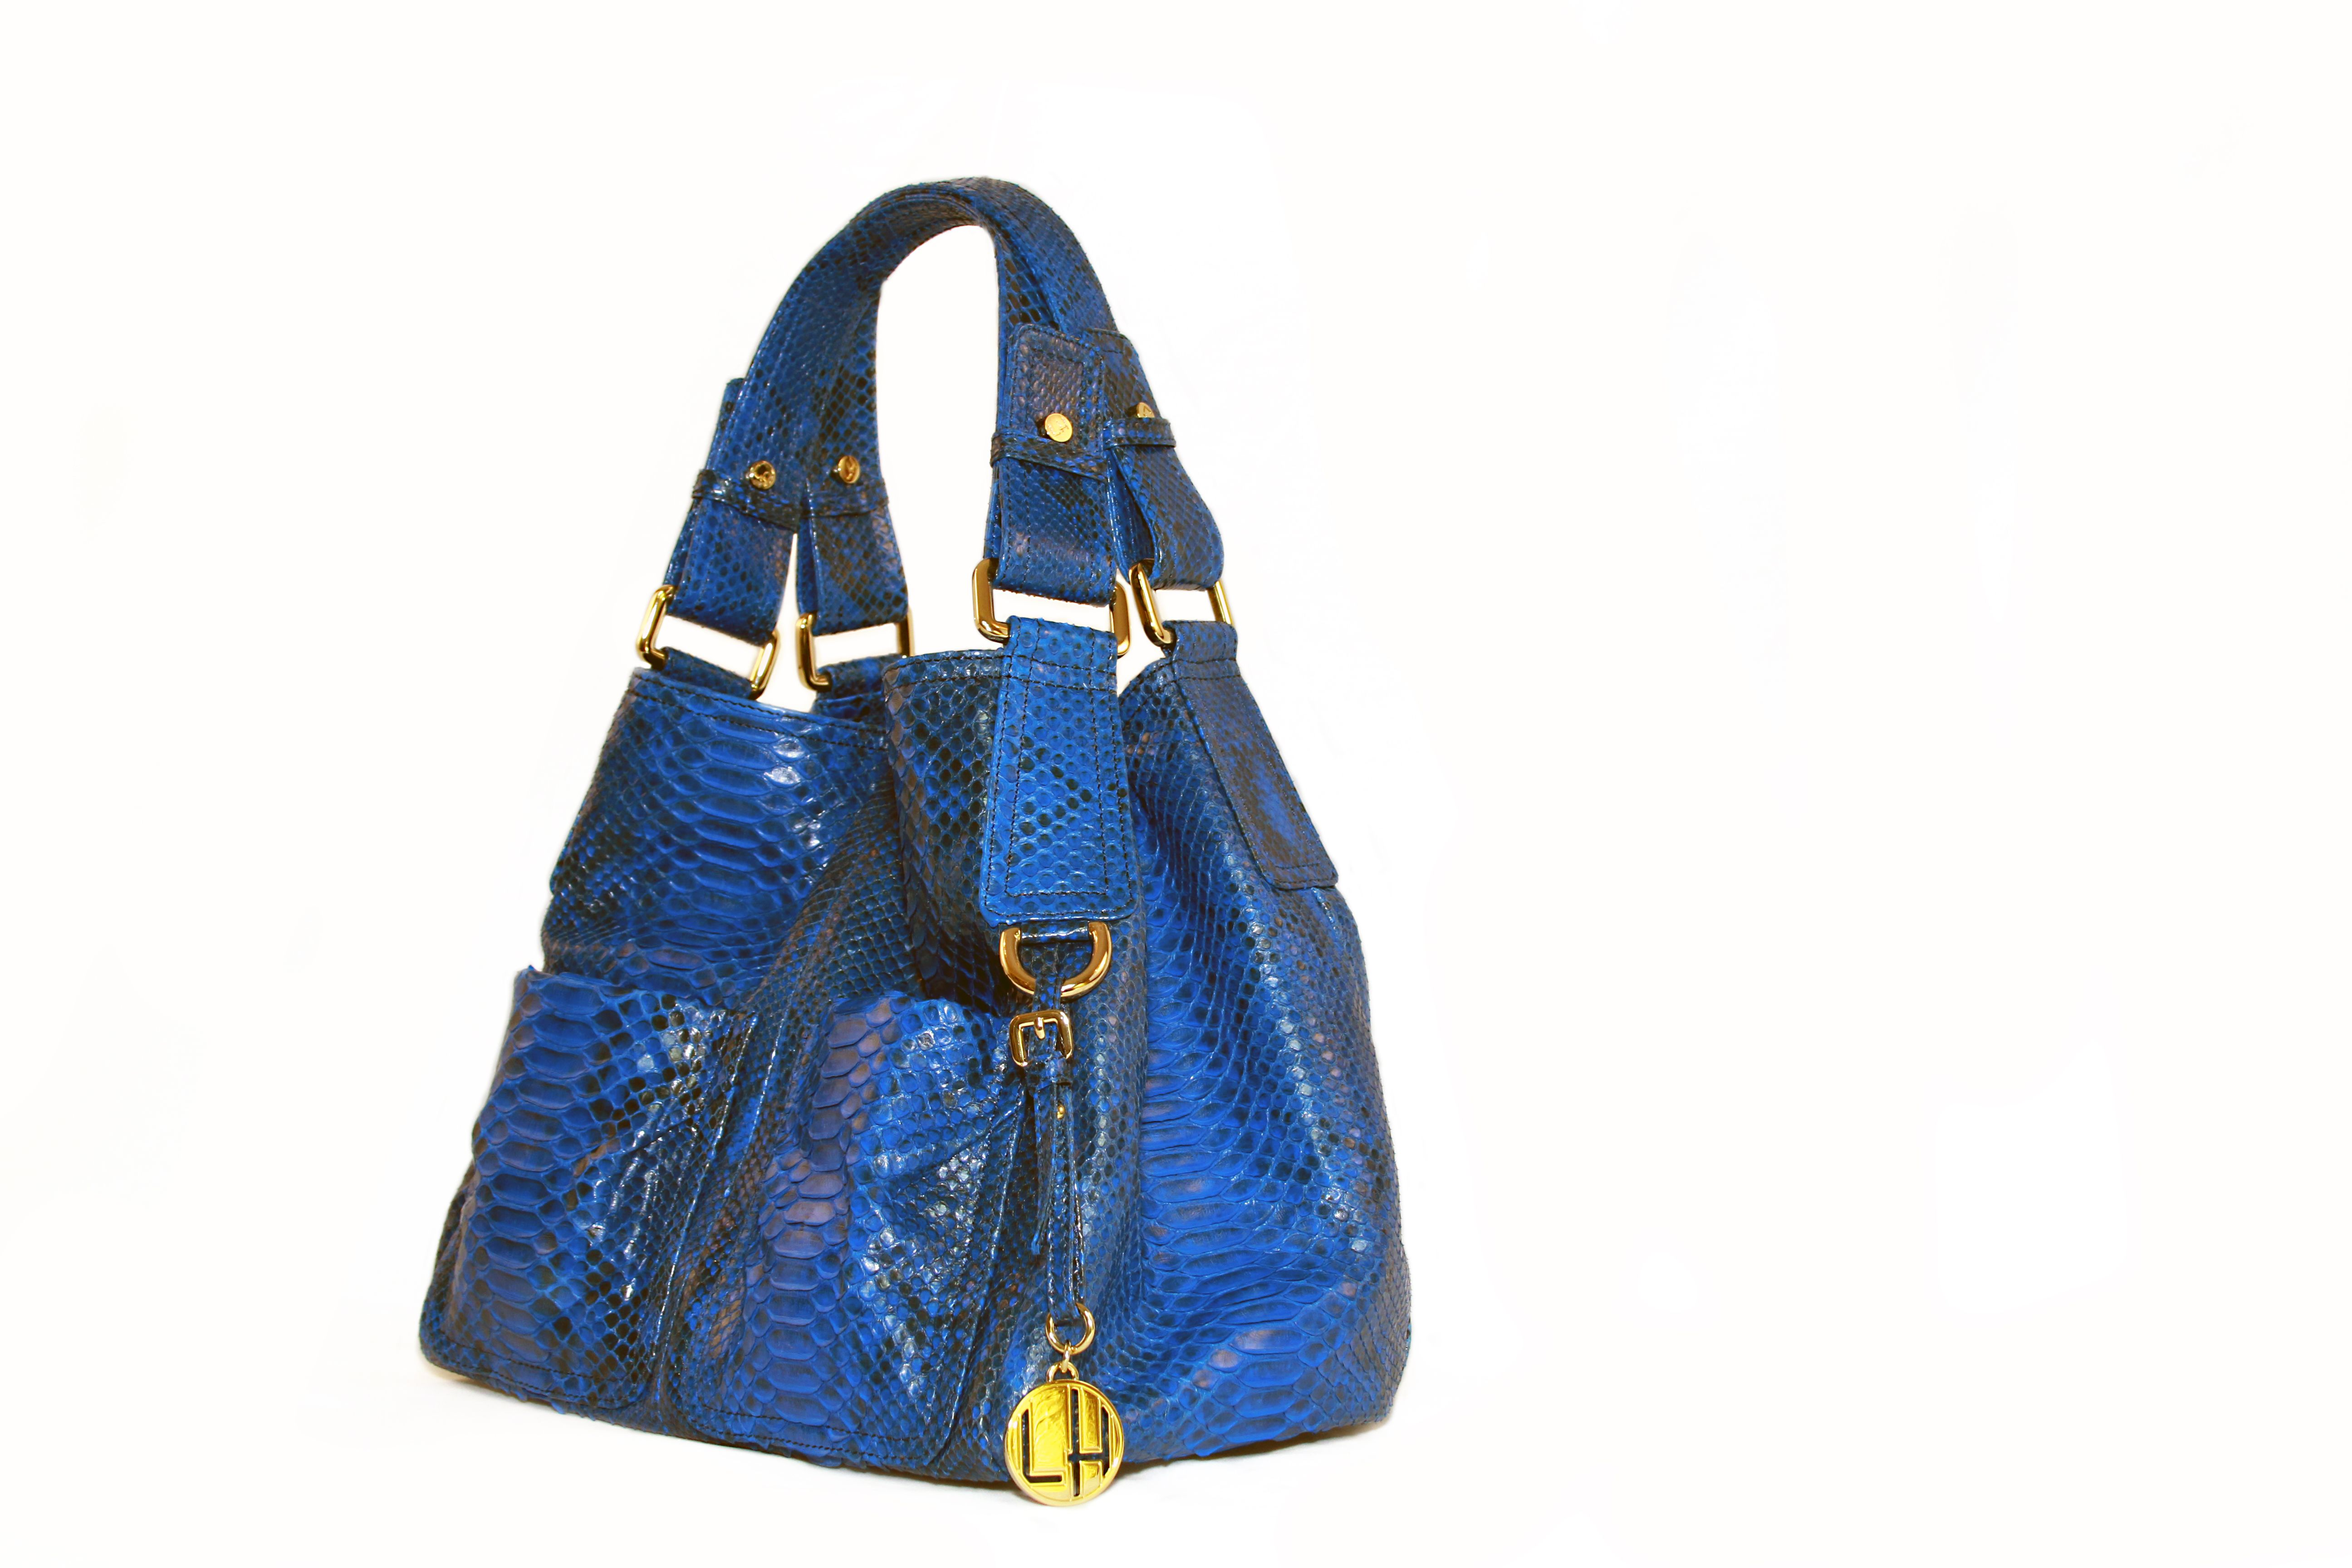 This Diane is Electrifying in Blue! Can't get enough of the Loren Hatch Collection at www.LorenHatch.com